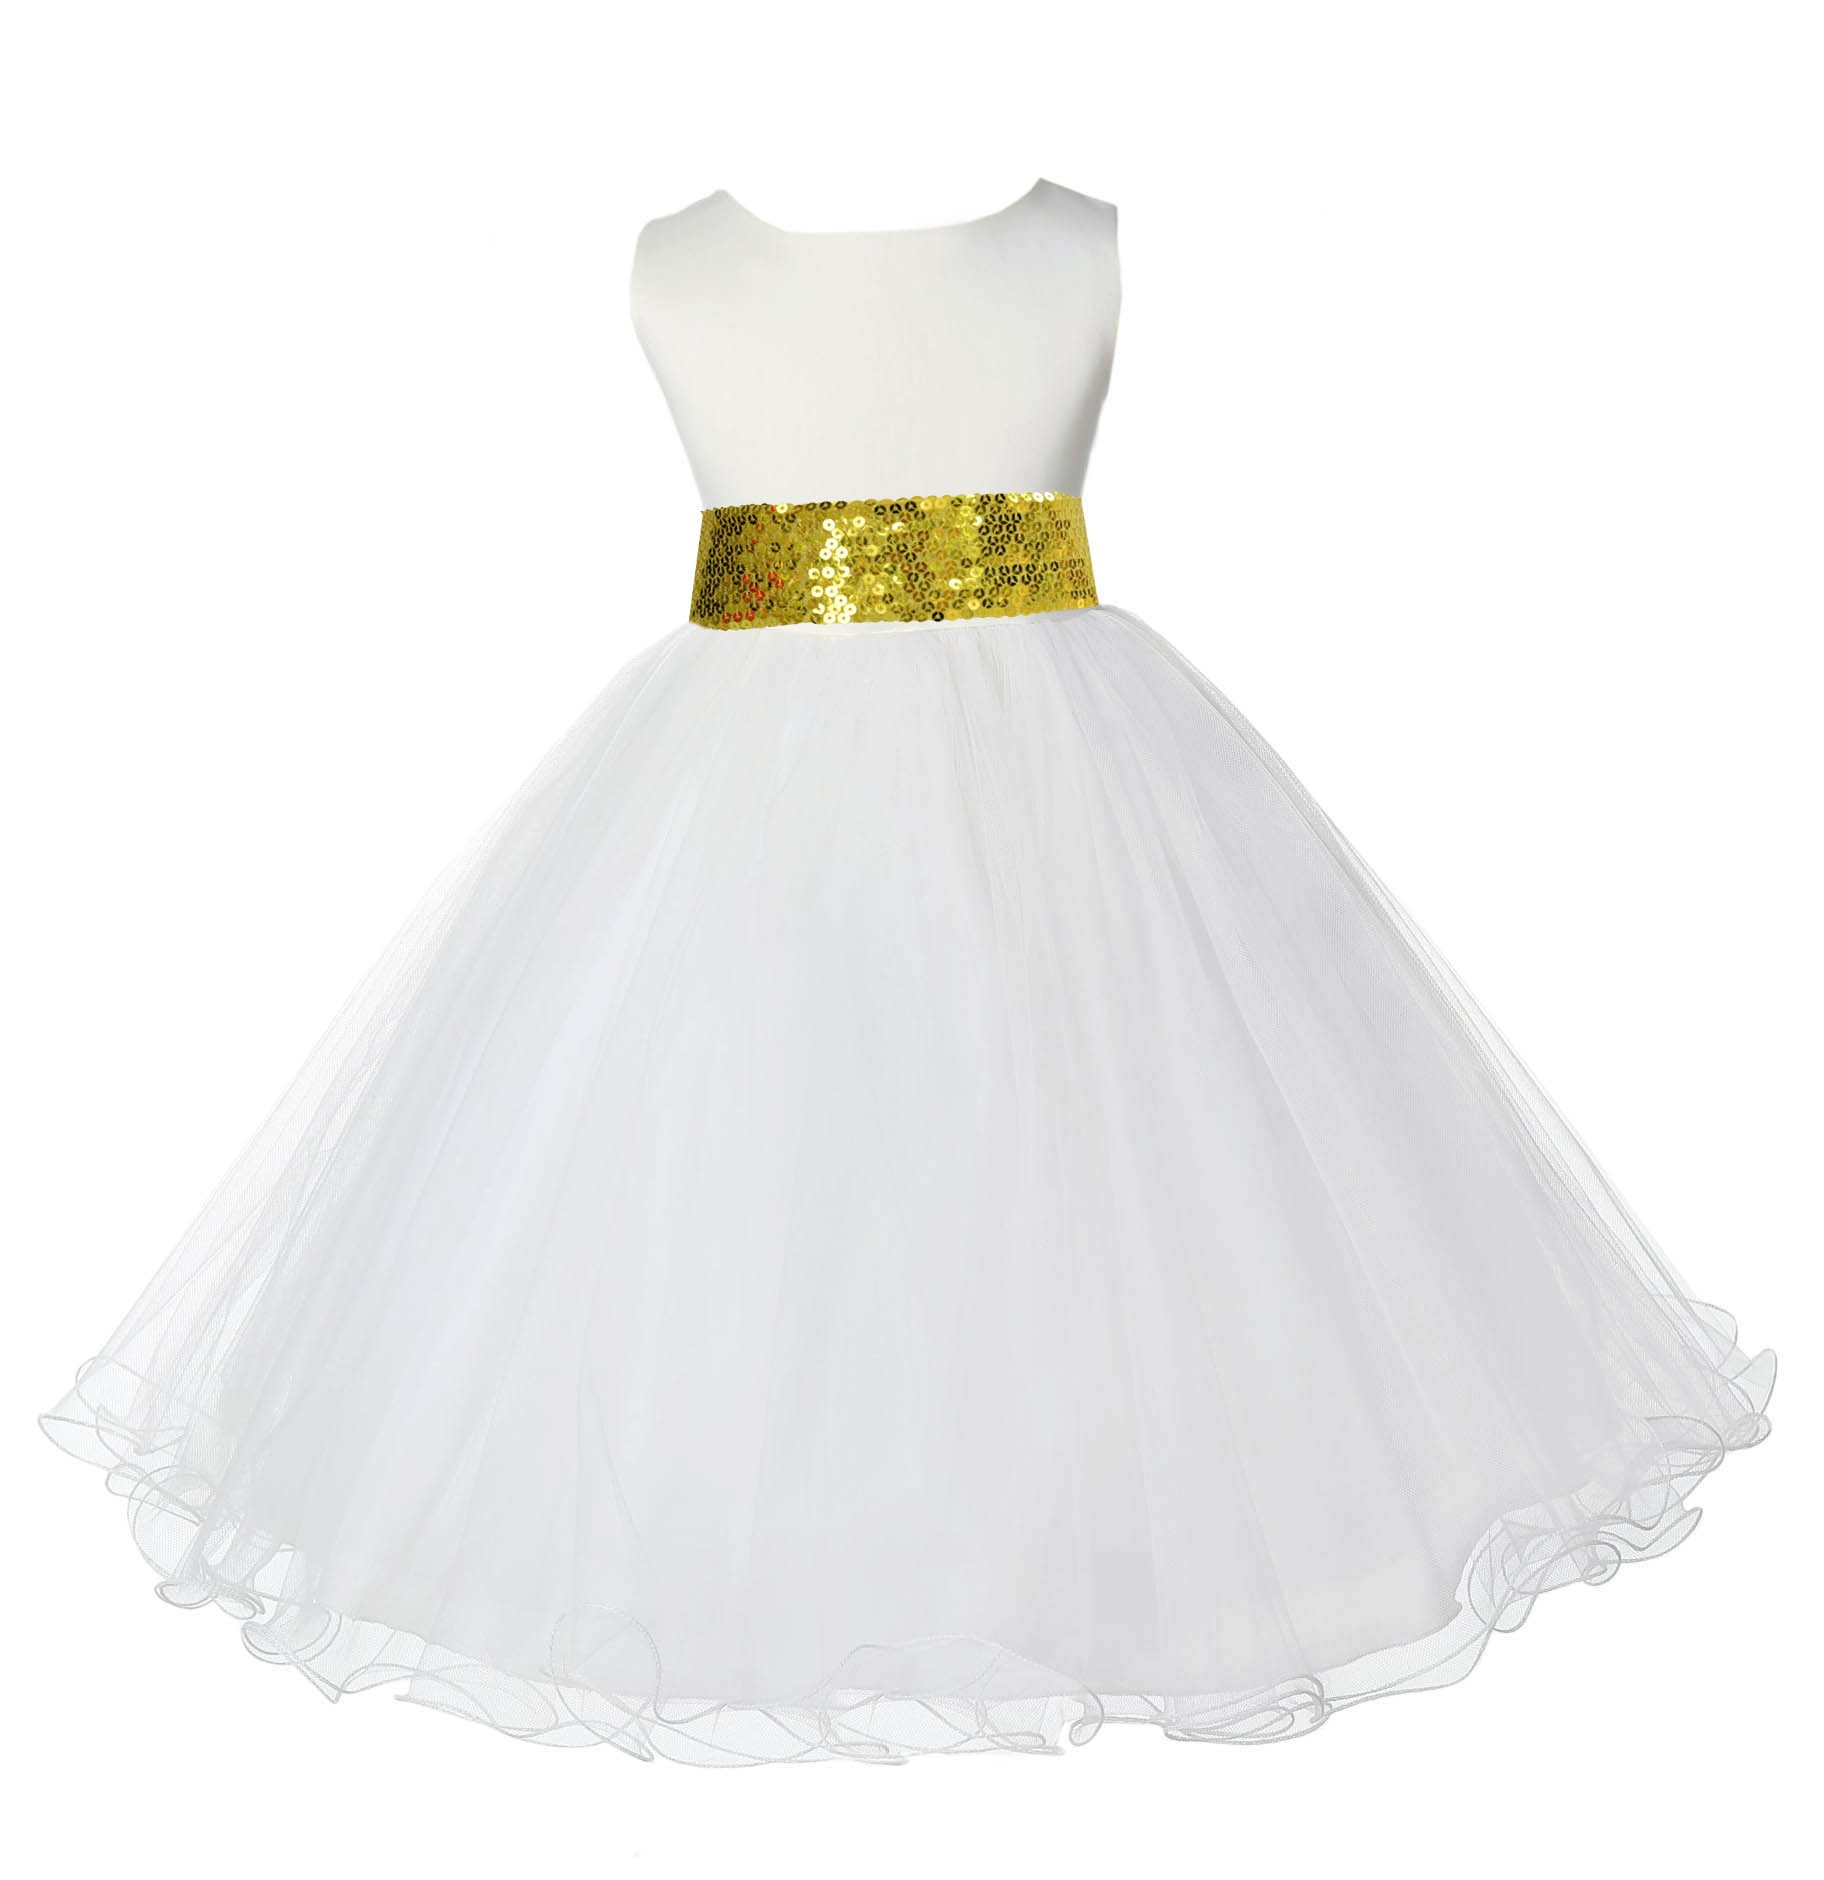 Ivory Tulle Rattail Edge Sunbeam Sequin Sash Flower Girl Dress 829mh